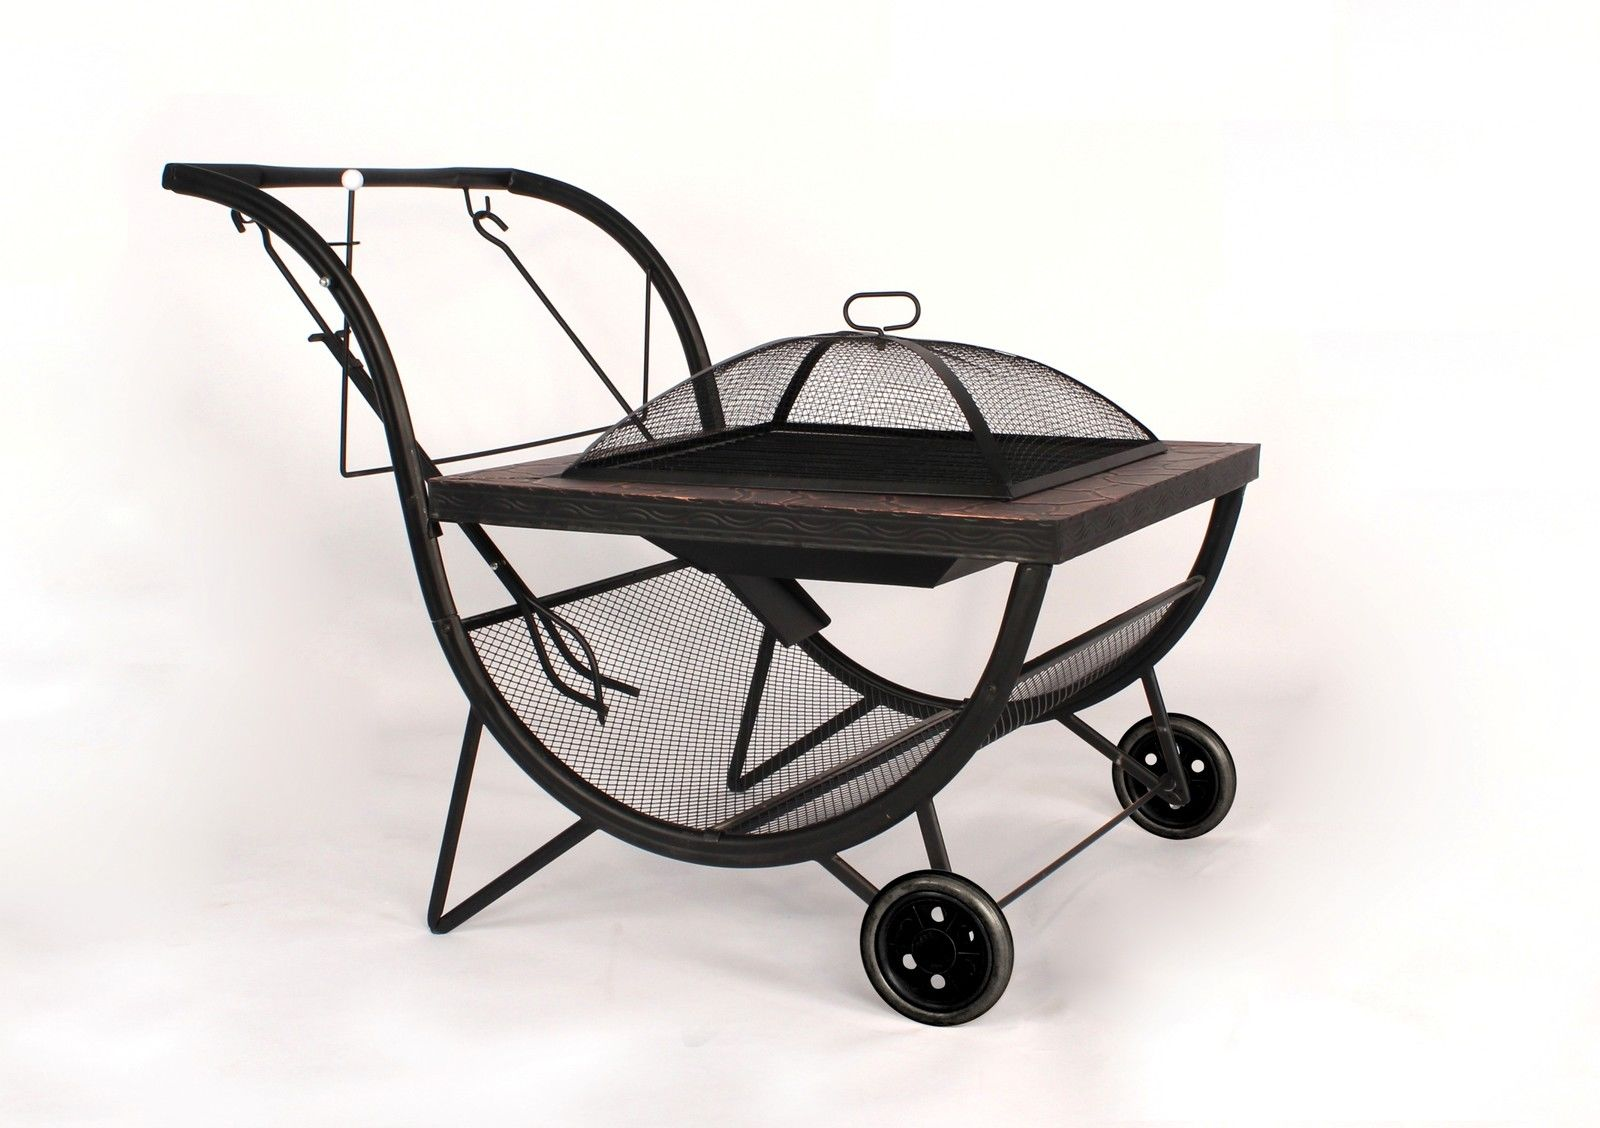 bbq fire pit grill outdoor fireplace on wheels trolley. Black Bedroom Furniture Sets. Home Design Ideas